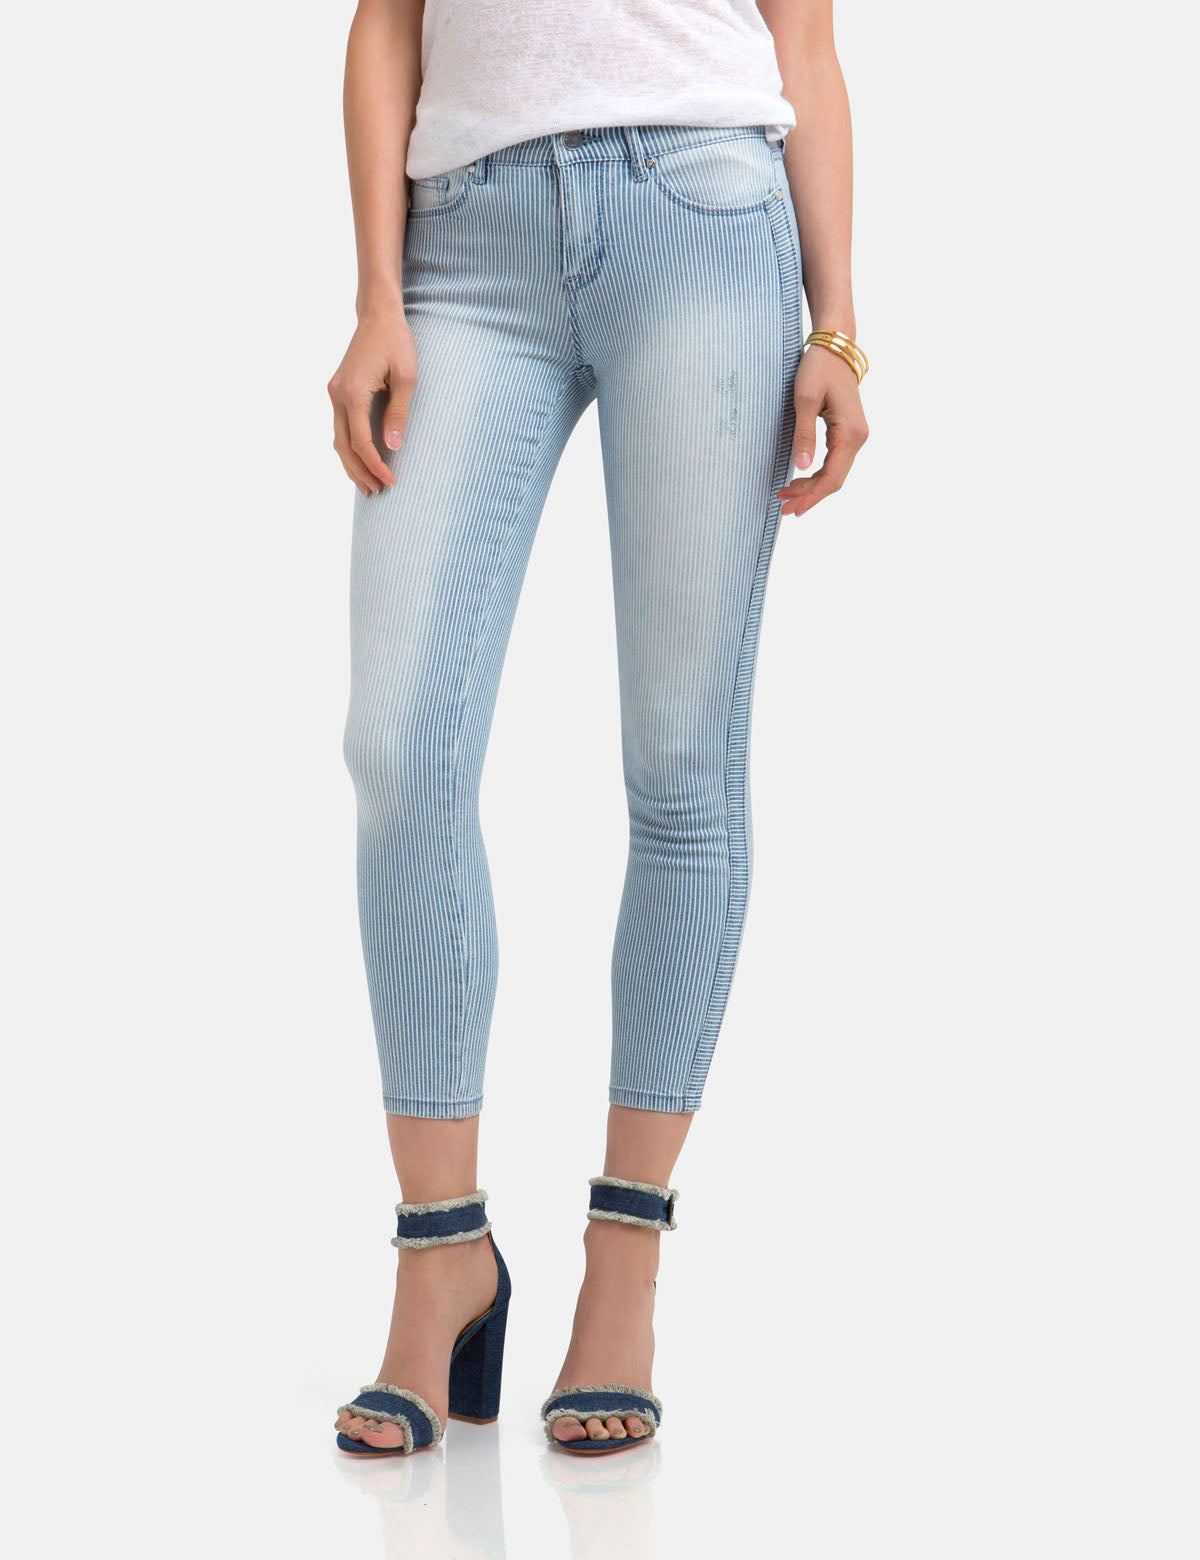 STRETCH RAILROAD STRIPE SKINNY CROP JEANS